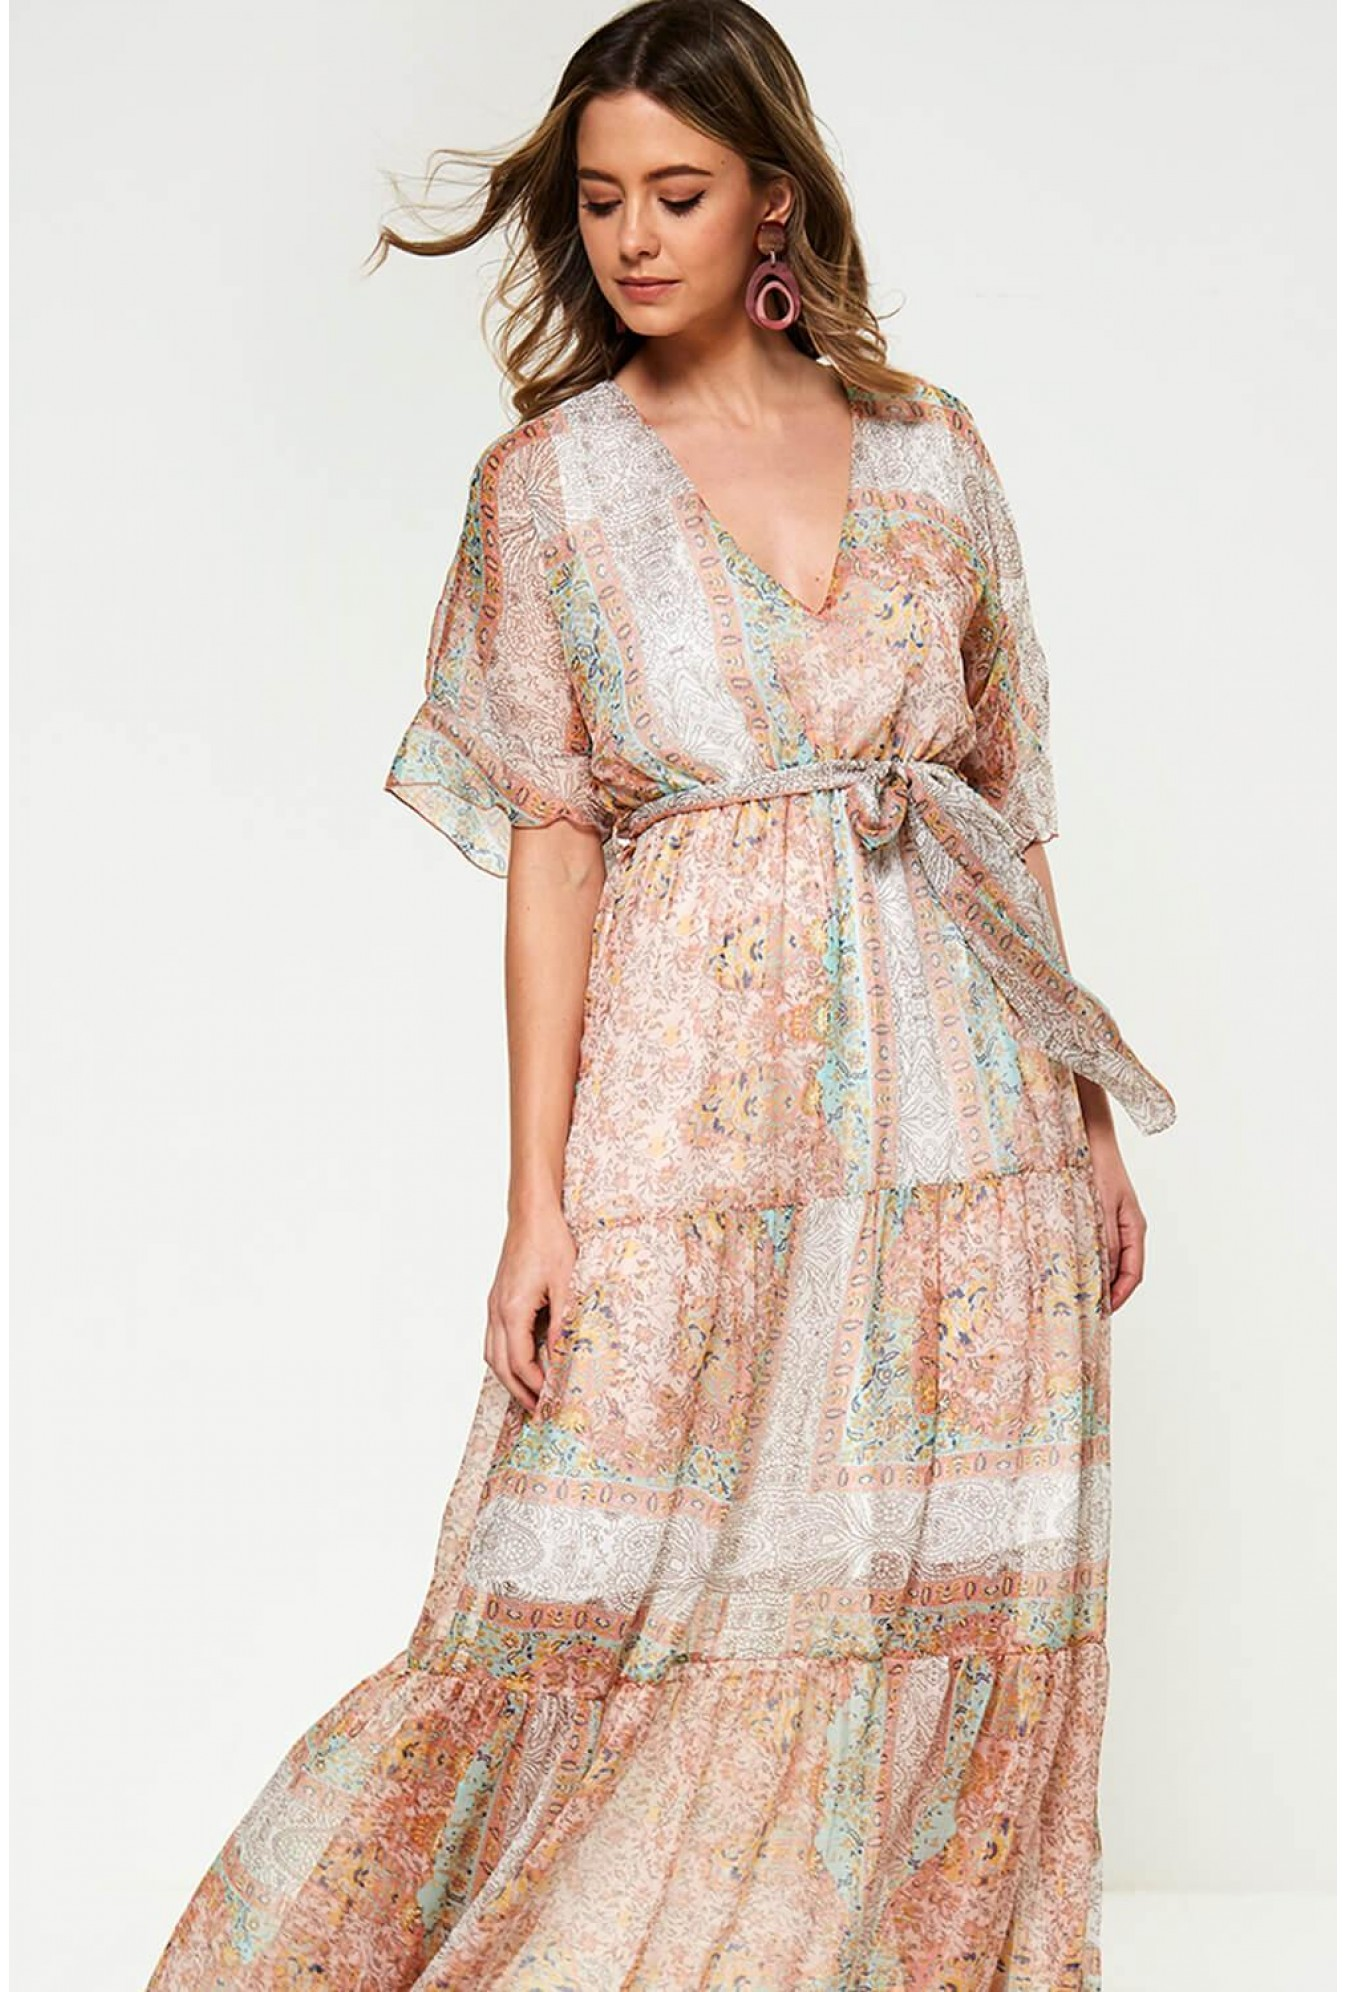 f36272665a John Zack Roxanne Chiffon Print Maxi Dress in Blush | iCLOTHING